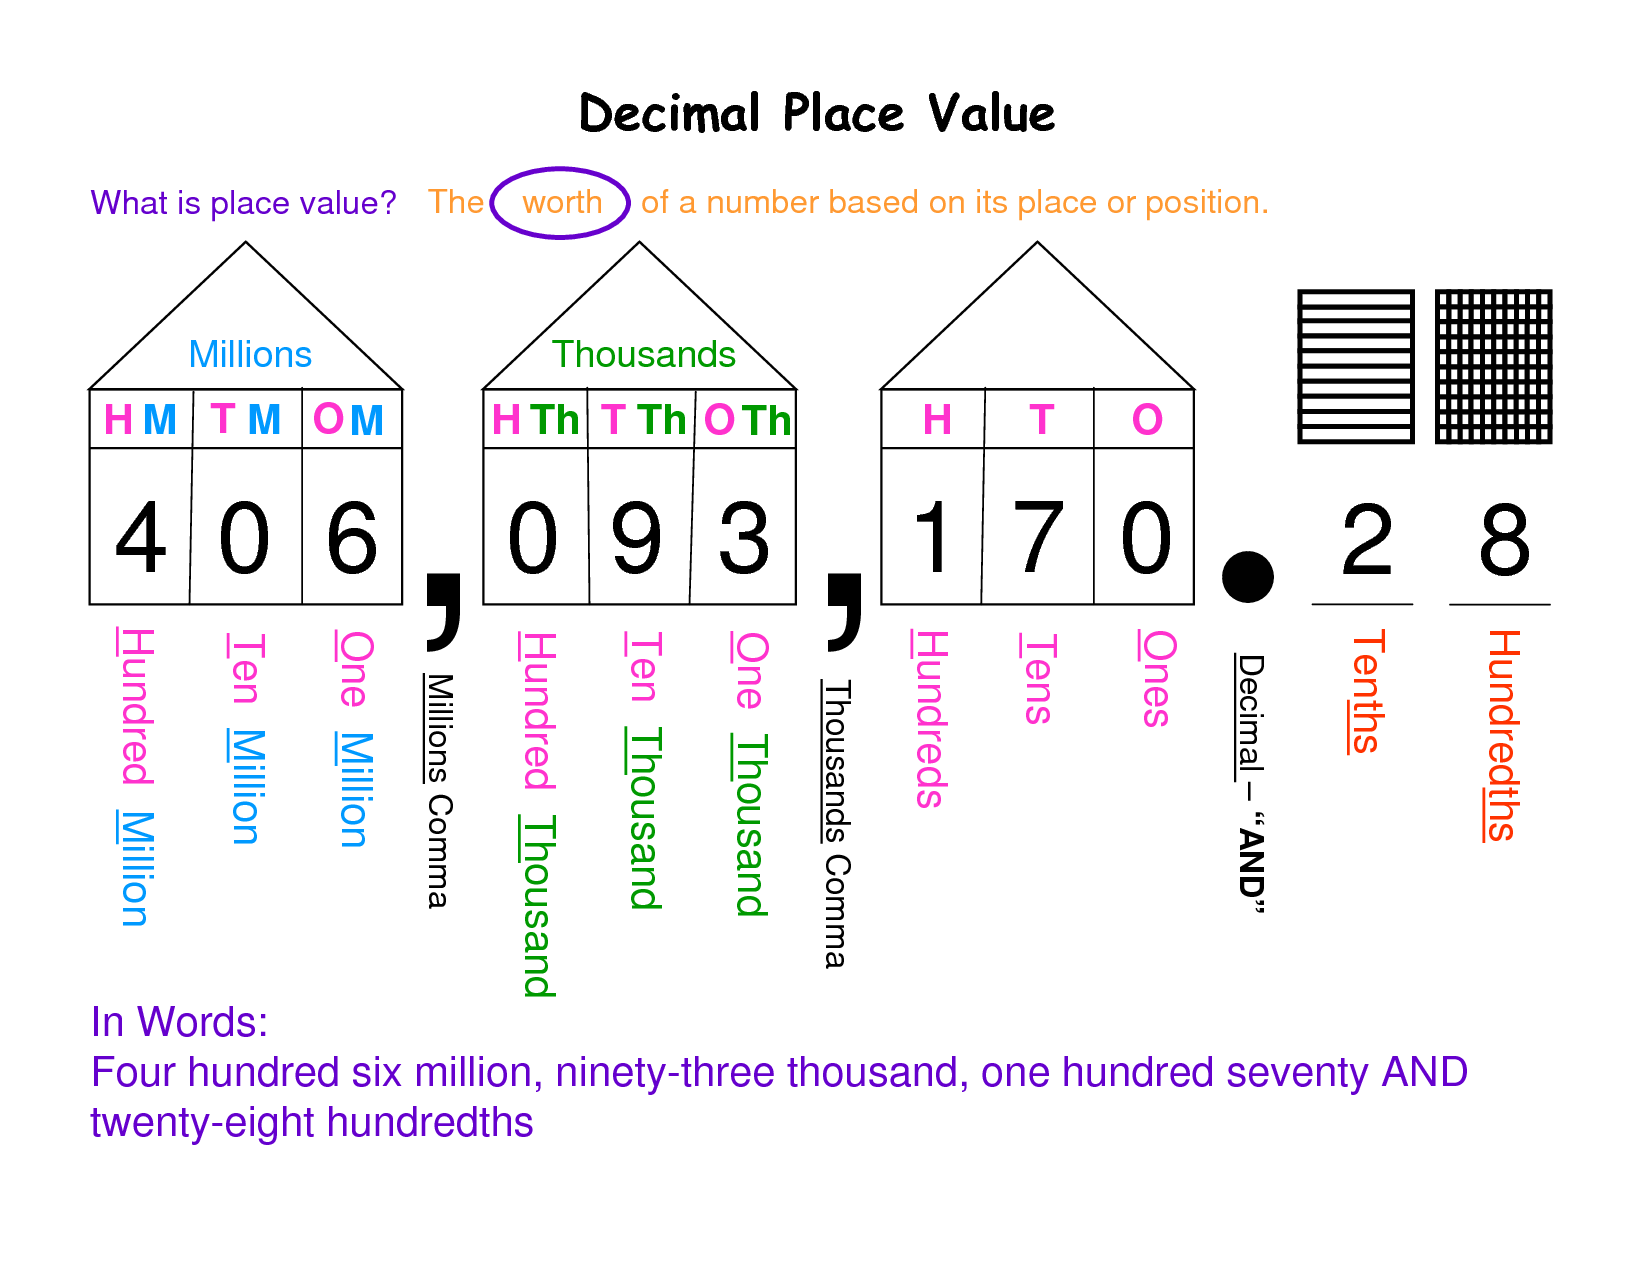 worksheet Place Value Sheet full size decimal place value chart google image result for http httpimg